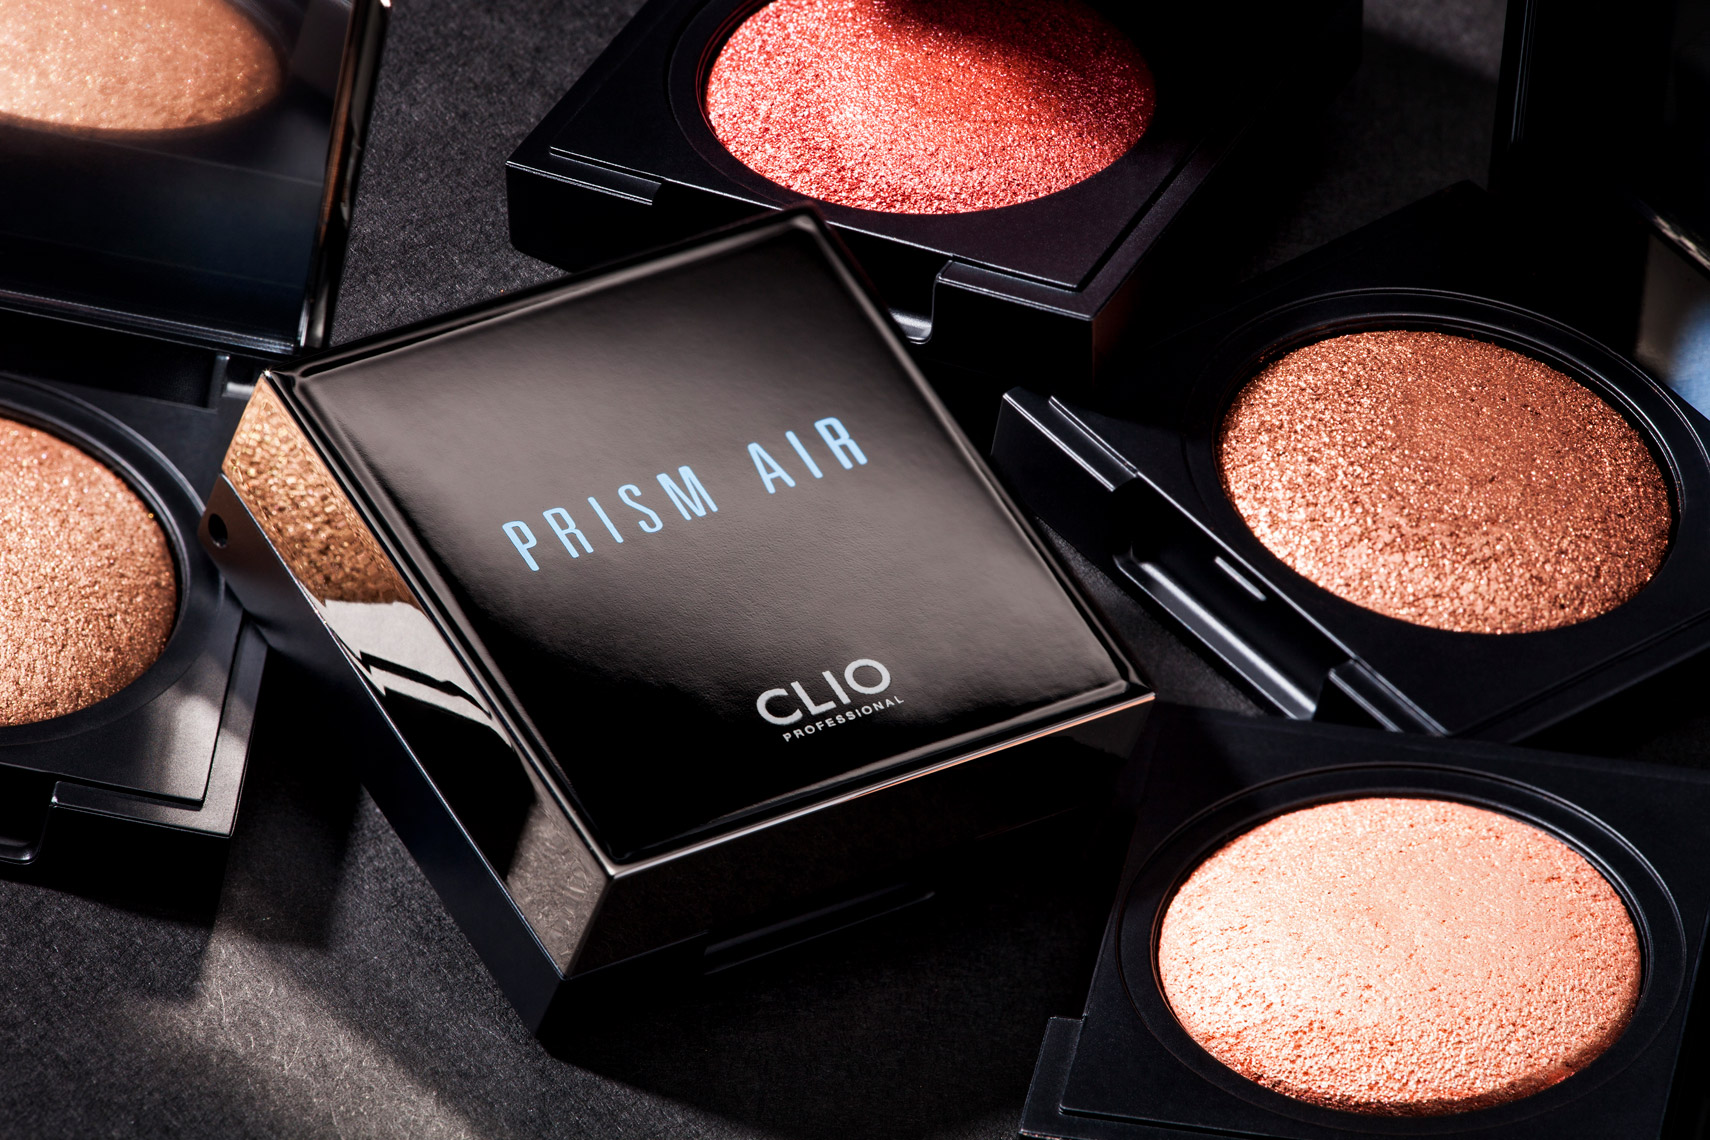 Clio Cosmetics, Makeup, Cosmetics, Makeup Photography, Cosmetic Photography, Creative Still, Jewelry, fashion jewelry, jewelry photography, product photography, product photo, studio photography, Ian Jacob, Ian Jacob Photography